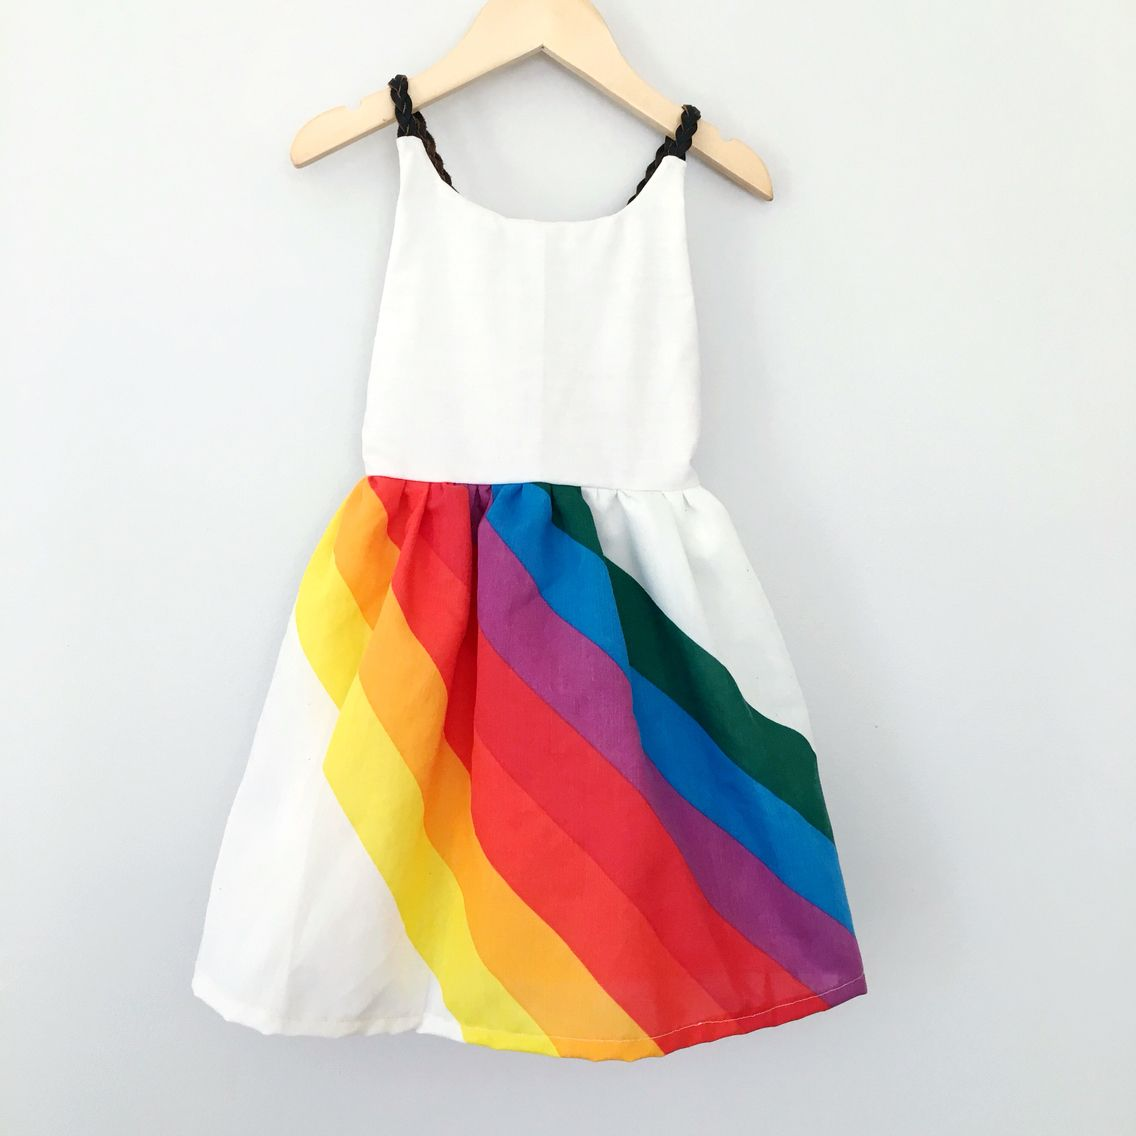 8f1496e9f Vintage rainbow girls dresses from www.pleiadeshandmade.com ...